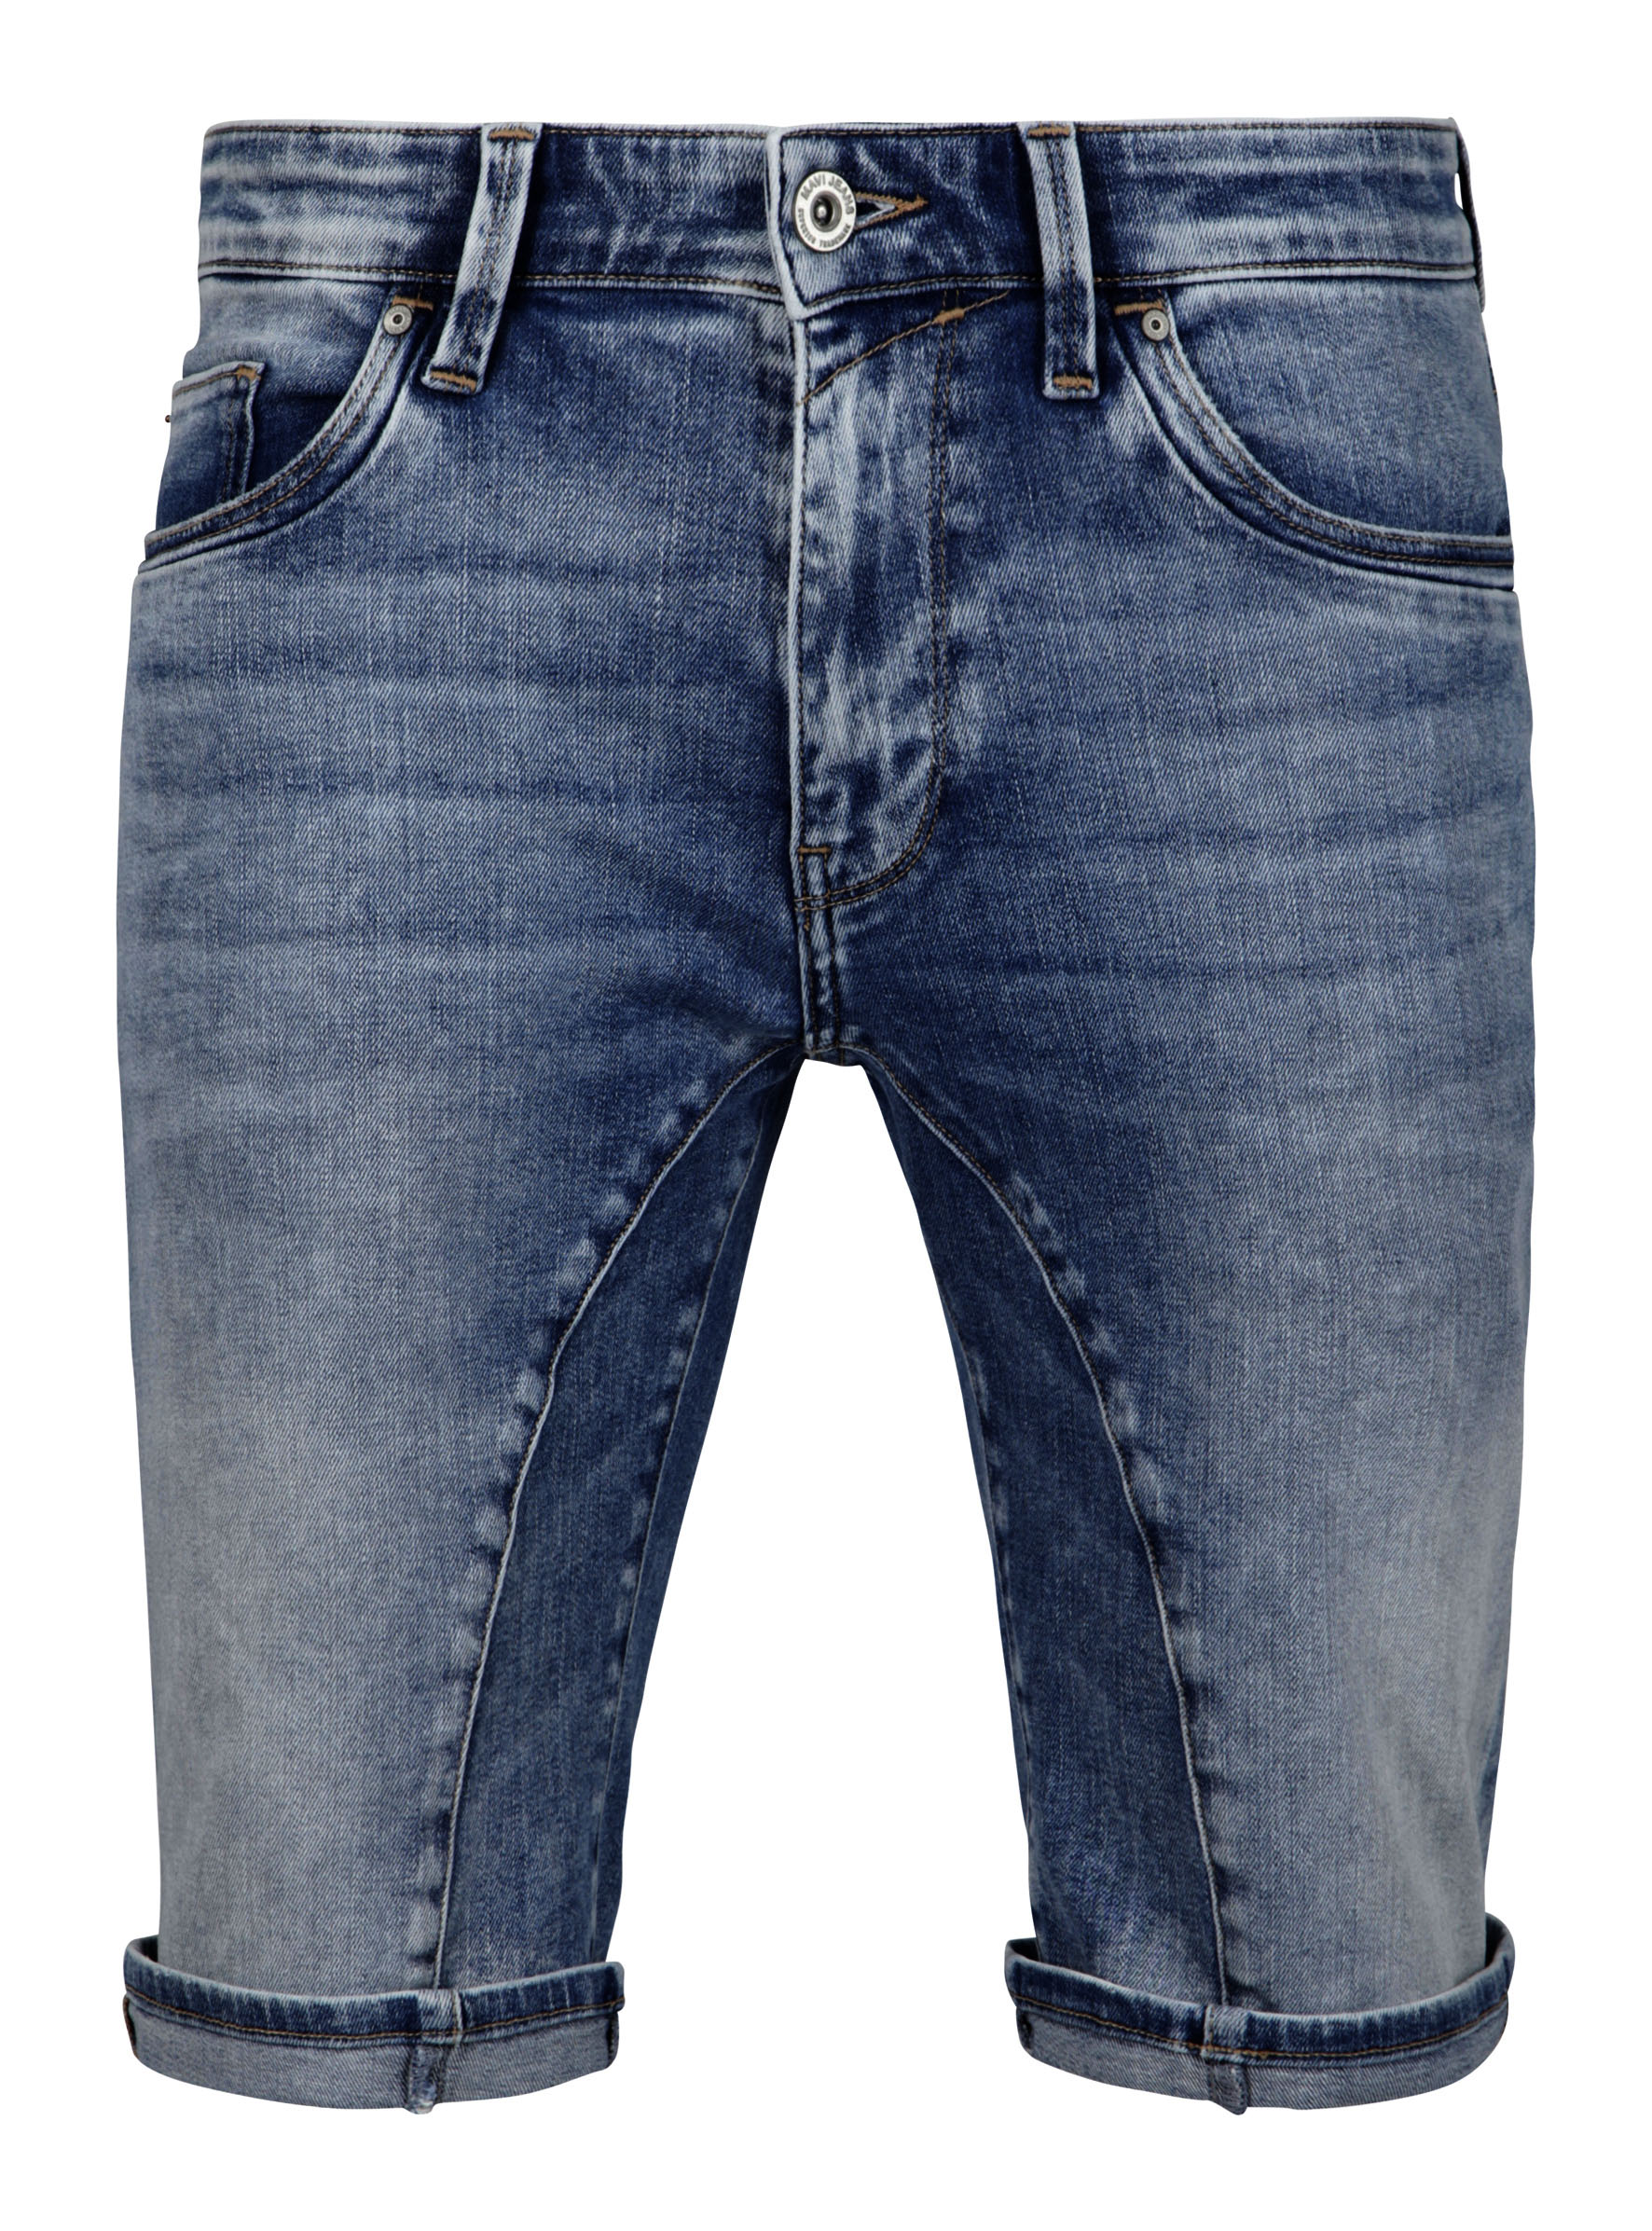 Denim Short Robin ist ein Highlight in der Mavi Men Sommer Kollektion